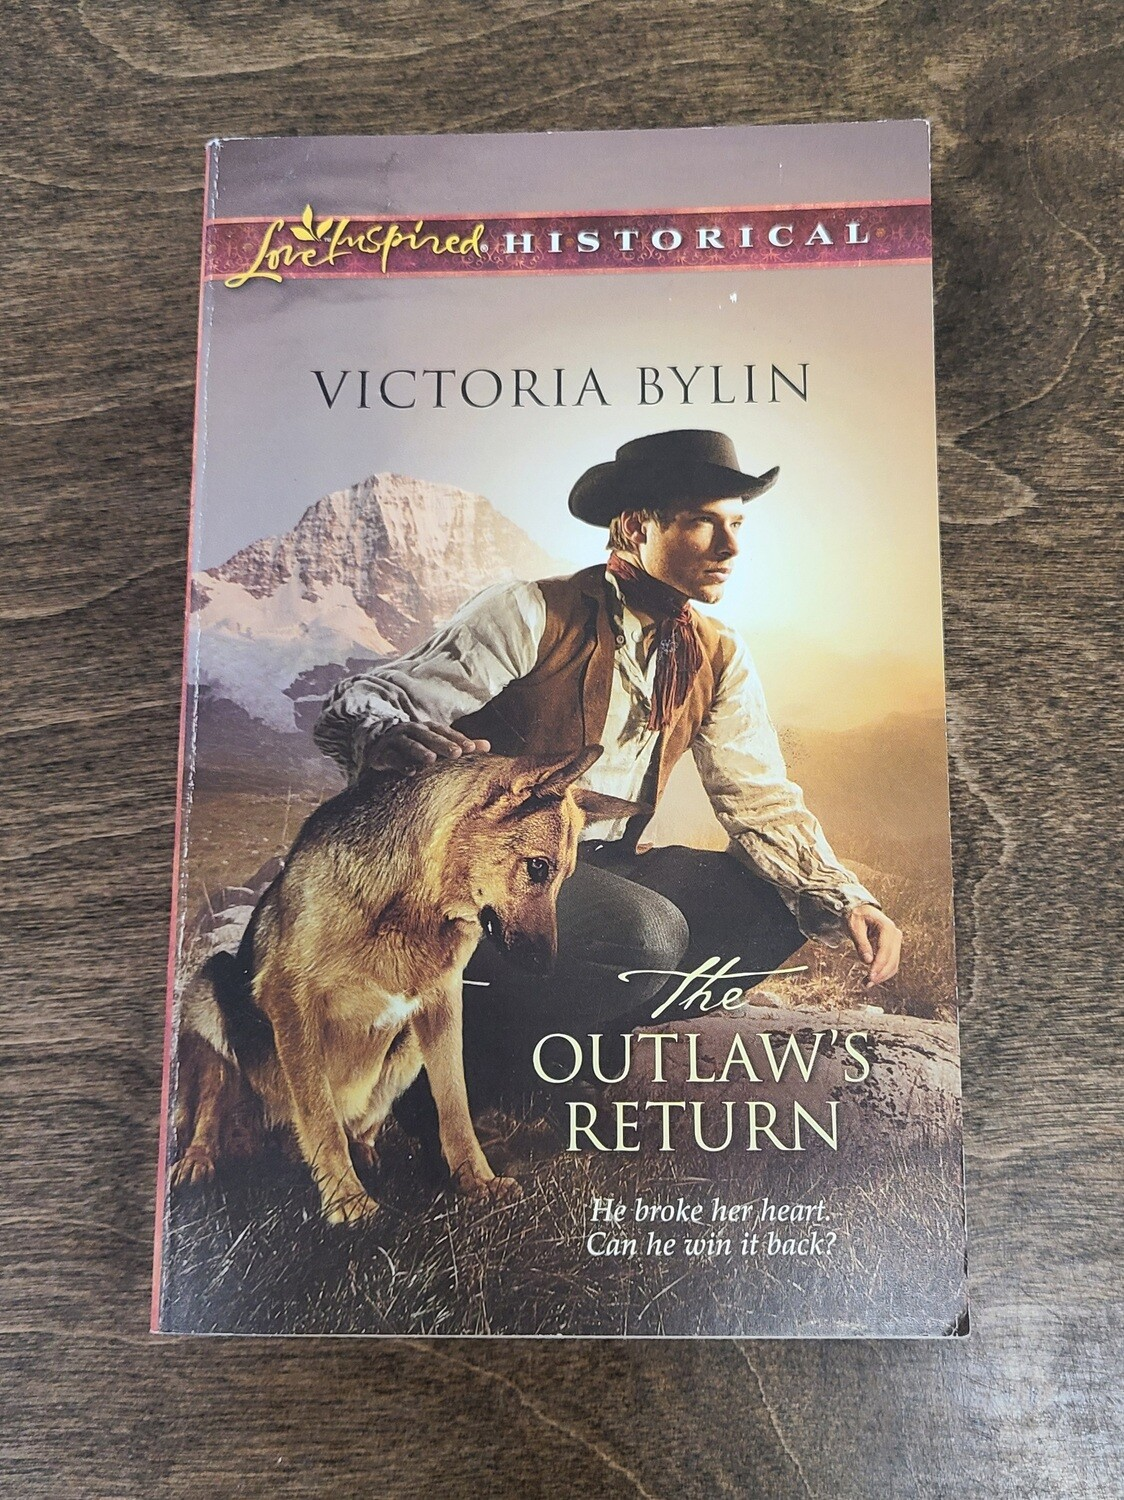 The Outlaw's Return by Victoria Bylin